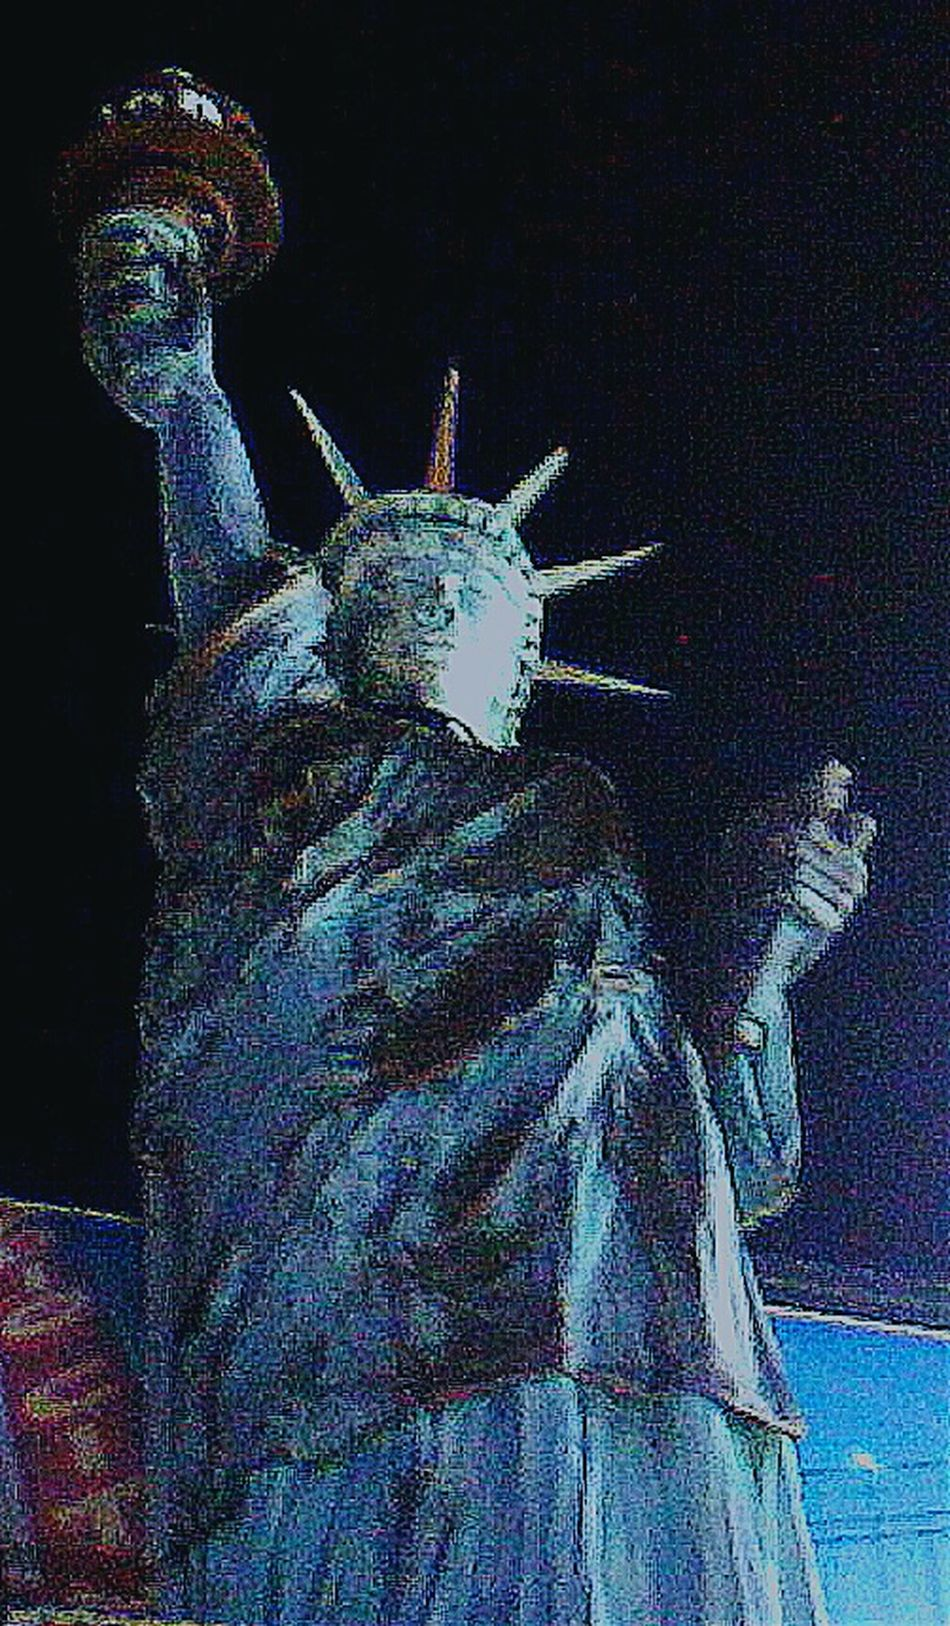 This Is Not America. New York This Isn't New York Adelaide OpenEdit Caffe Primo Adelaide, South Australia Taking Photos This Isn't The Statue Of Liberty Adelaide S.A.